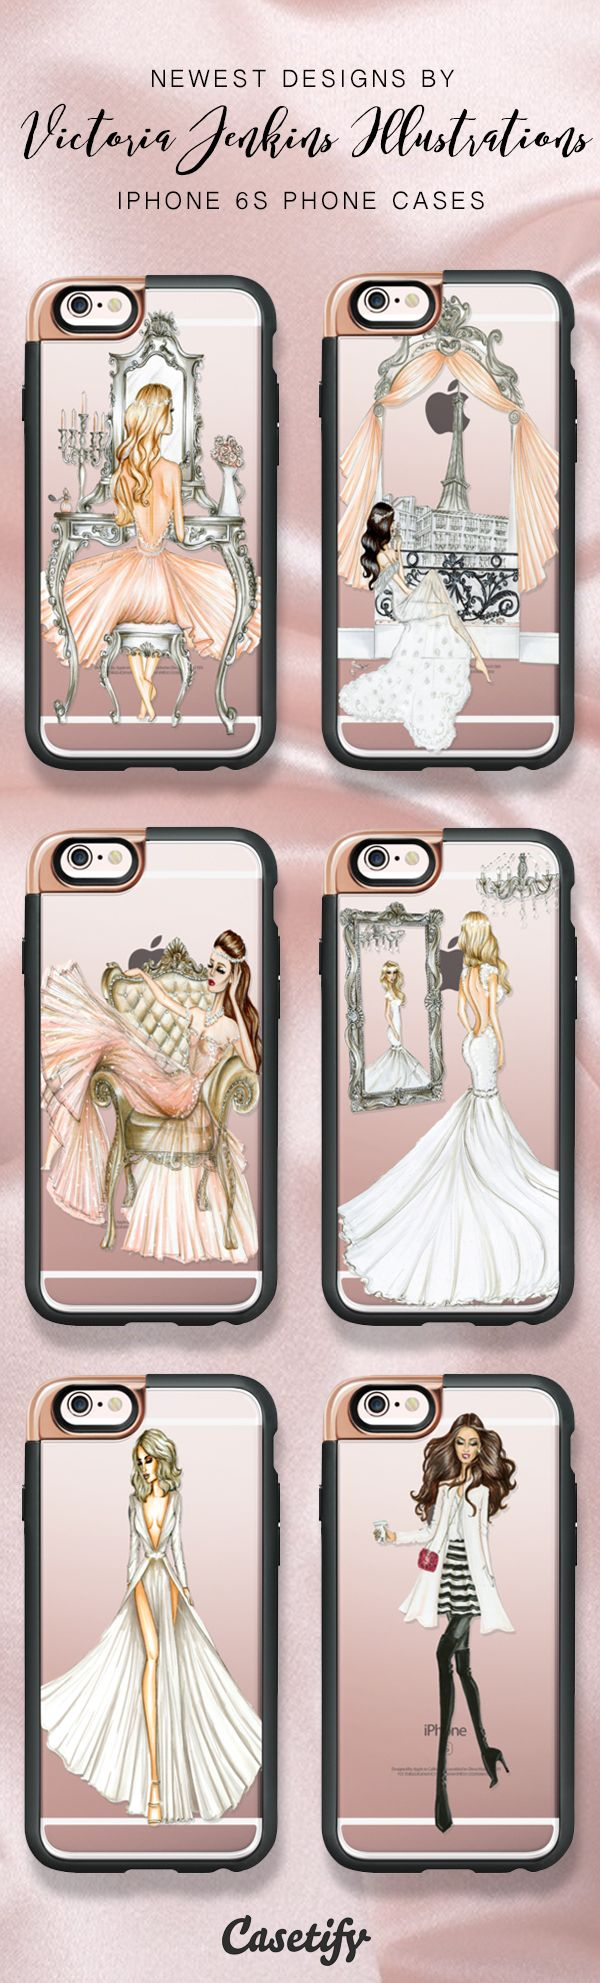 Check these newest designs by Victoria Jenkins Illustrations. Shop these iPhone 7 phone cases here >> https://www.casetify.com/victoriajenkinsillustrations/collection